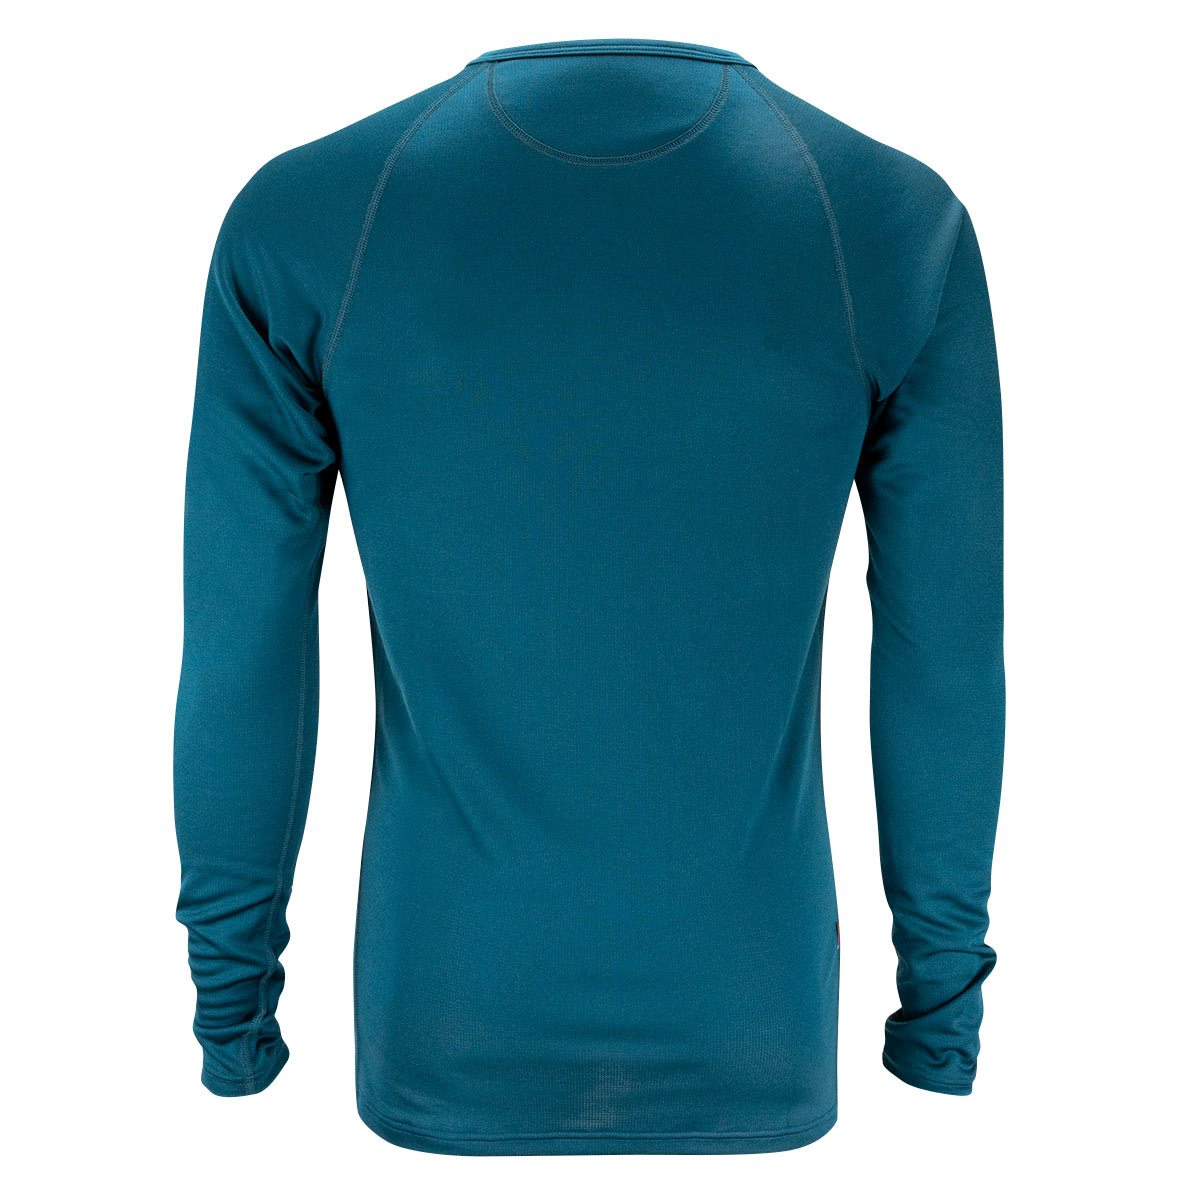 Velocio Men's Powerwool L/S Baselayer